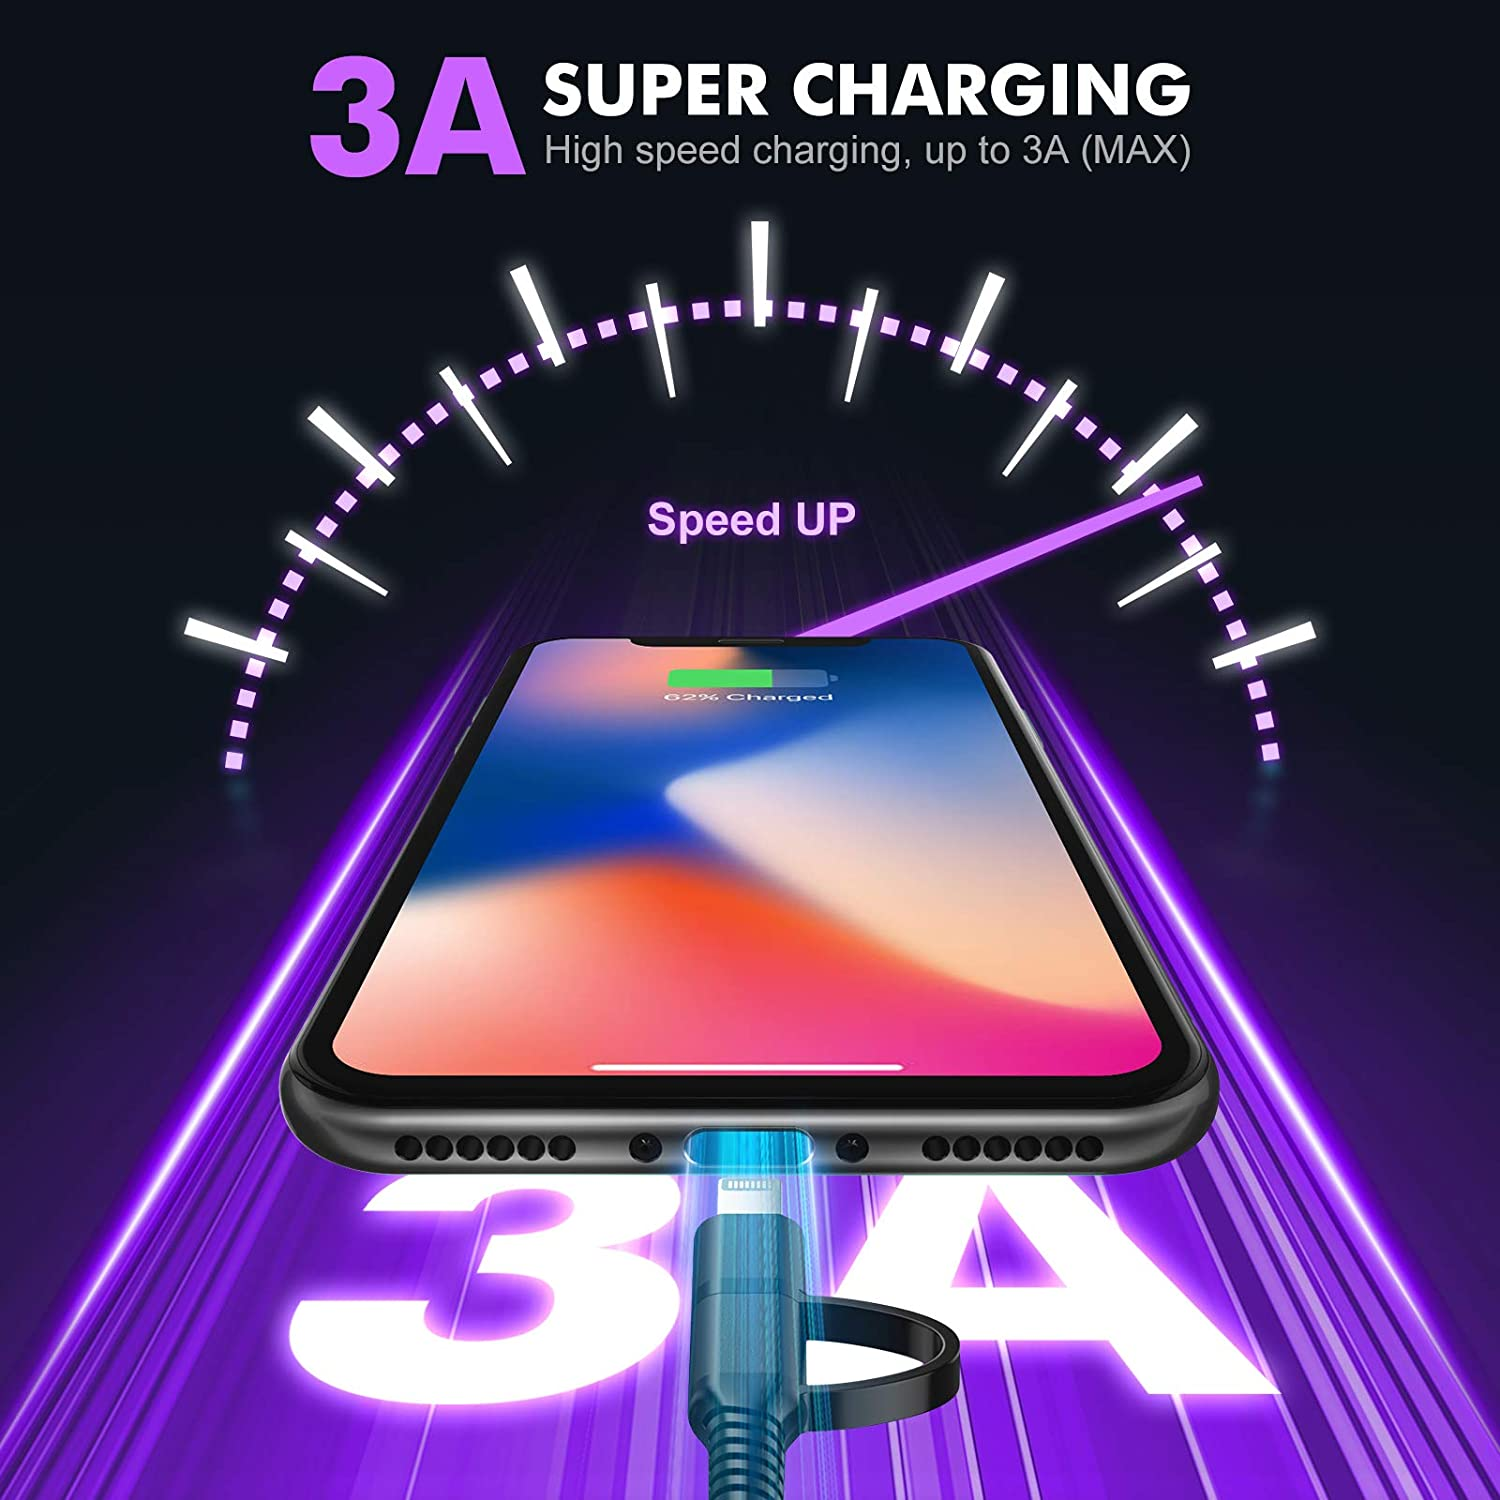 USB C charger Cable, 2 in 1 USB A to USB C/Lighting Cable 3A Fast Charging 3.3ft Lightning Charging Cords (Purple)